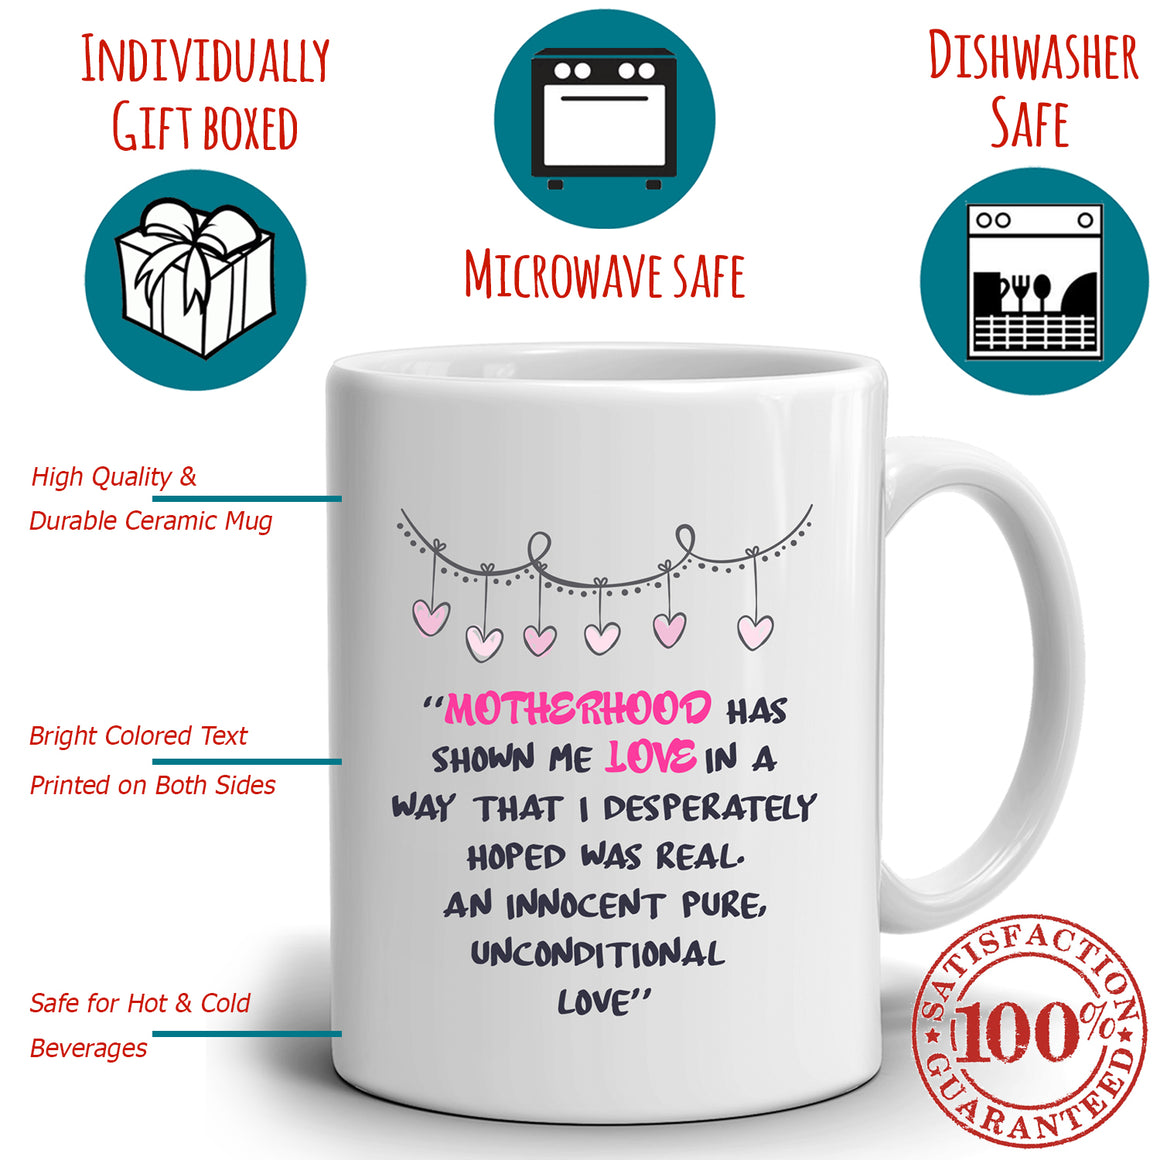 Moms Mothers Day Gifts Mug Motherhood Has Shown Me Love In A Way That I Desperately Hoped Was Real. An Innocent Pure Unconditional Love, Printed on Both Sides!